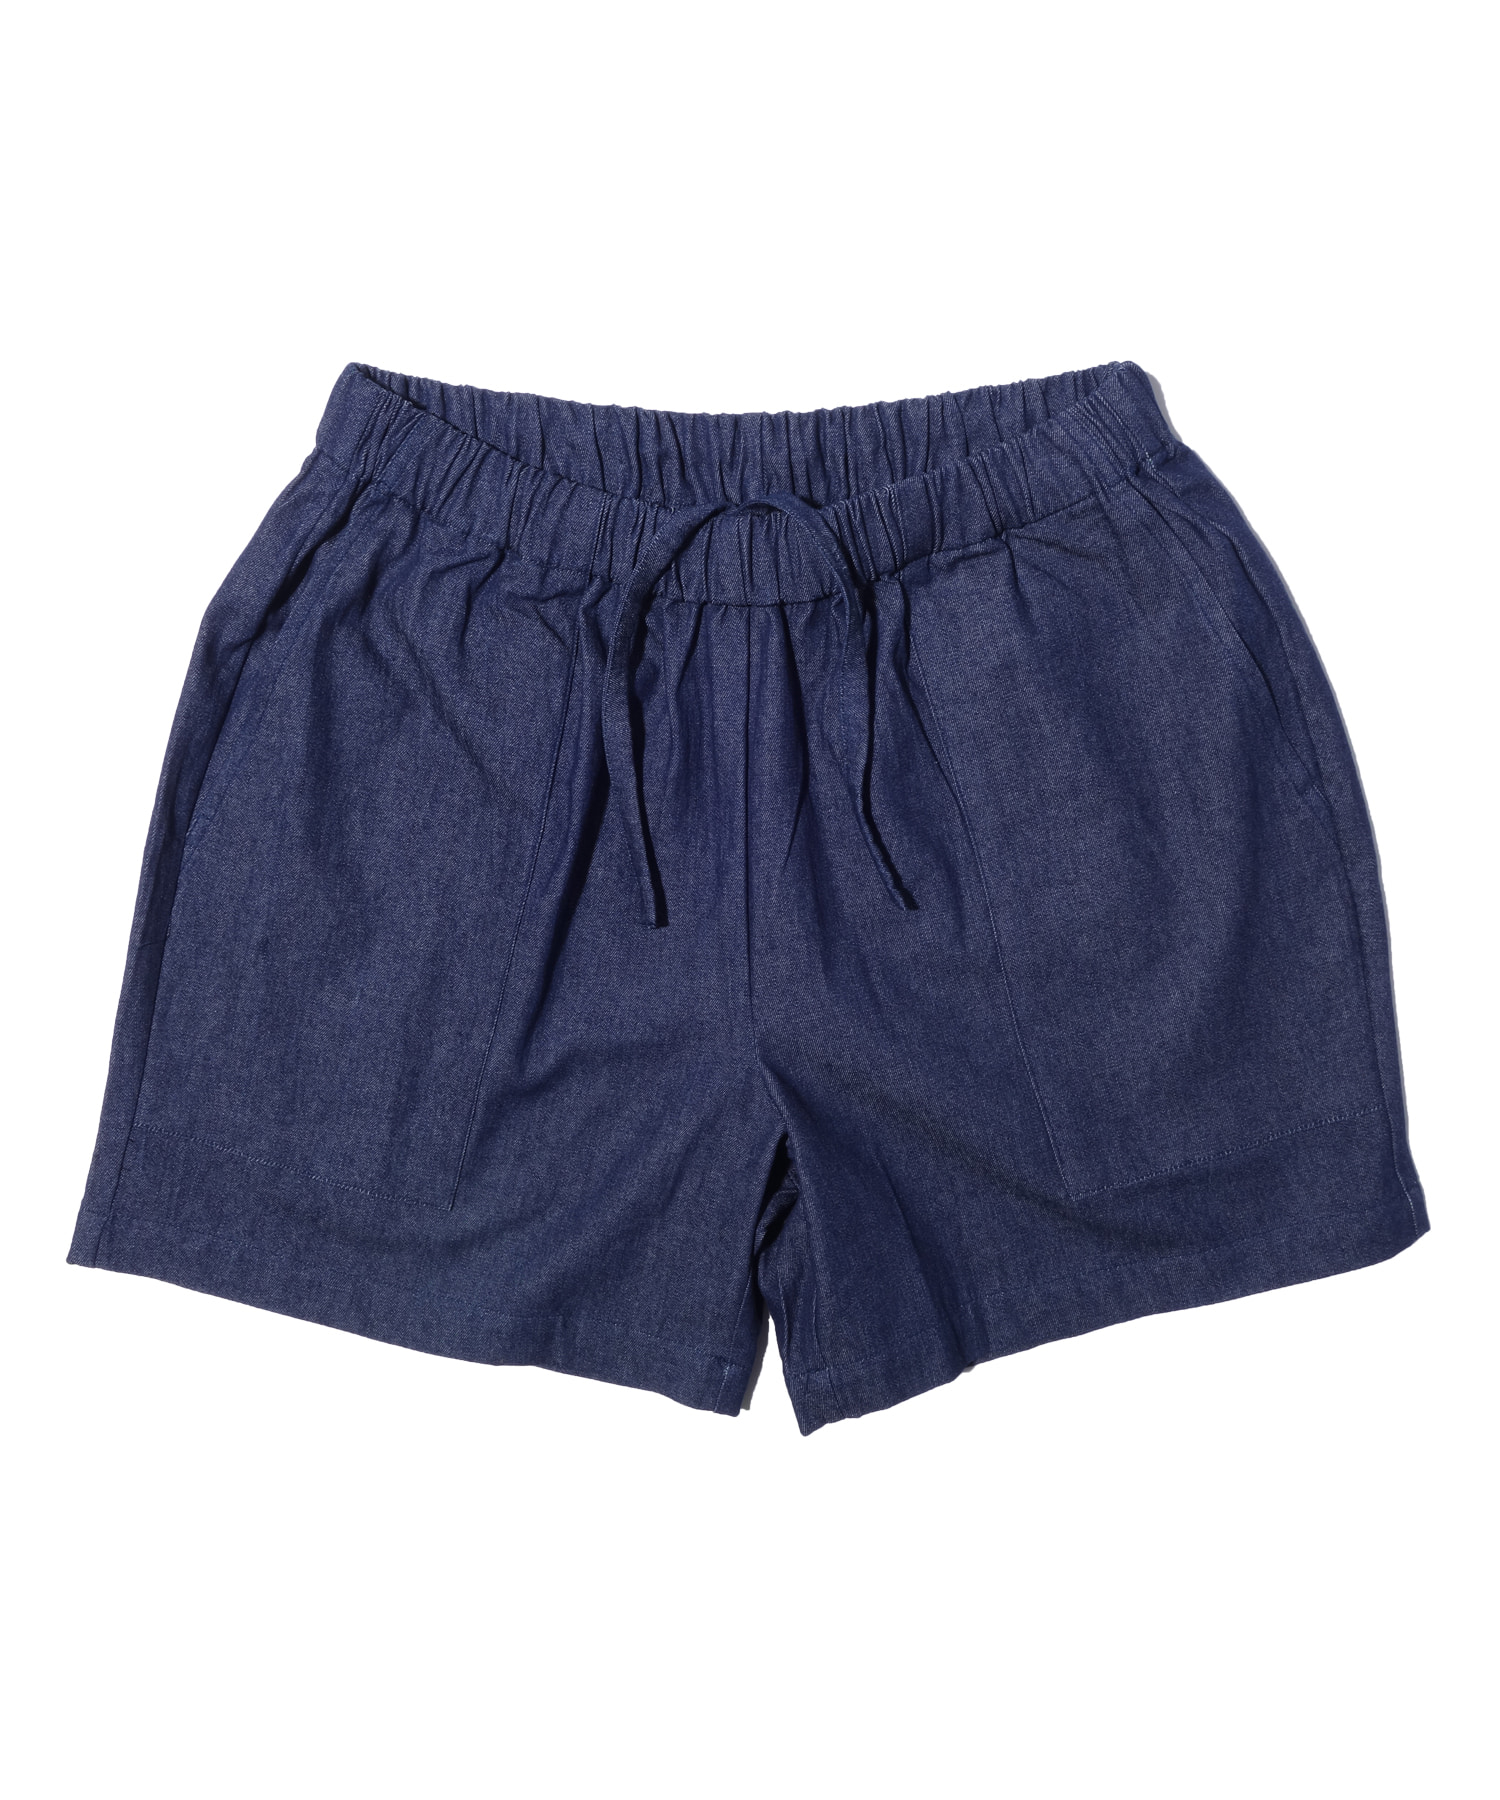 해버대셔리 CHAMBRAY BEACH SHORTS_Indigo